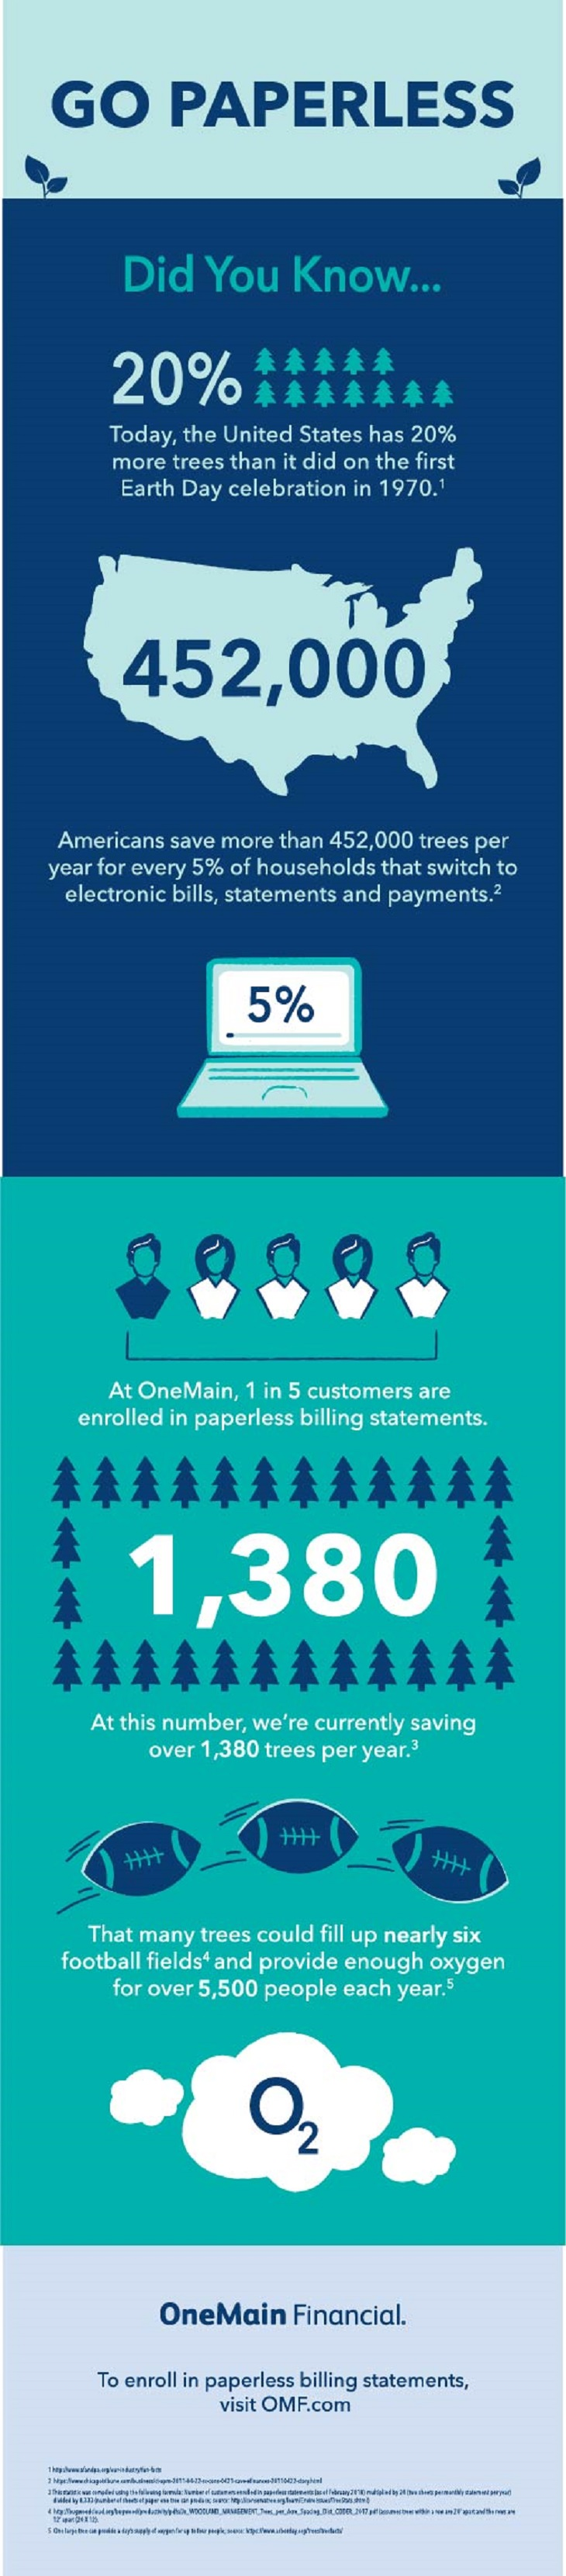 Infographic by OneMain Financial about the positive impact of paperless billing enrollment.